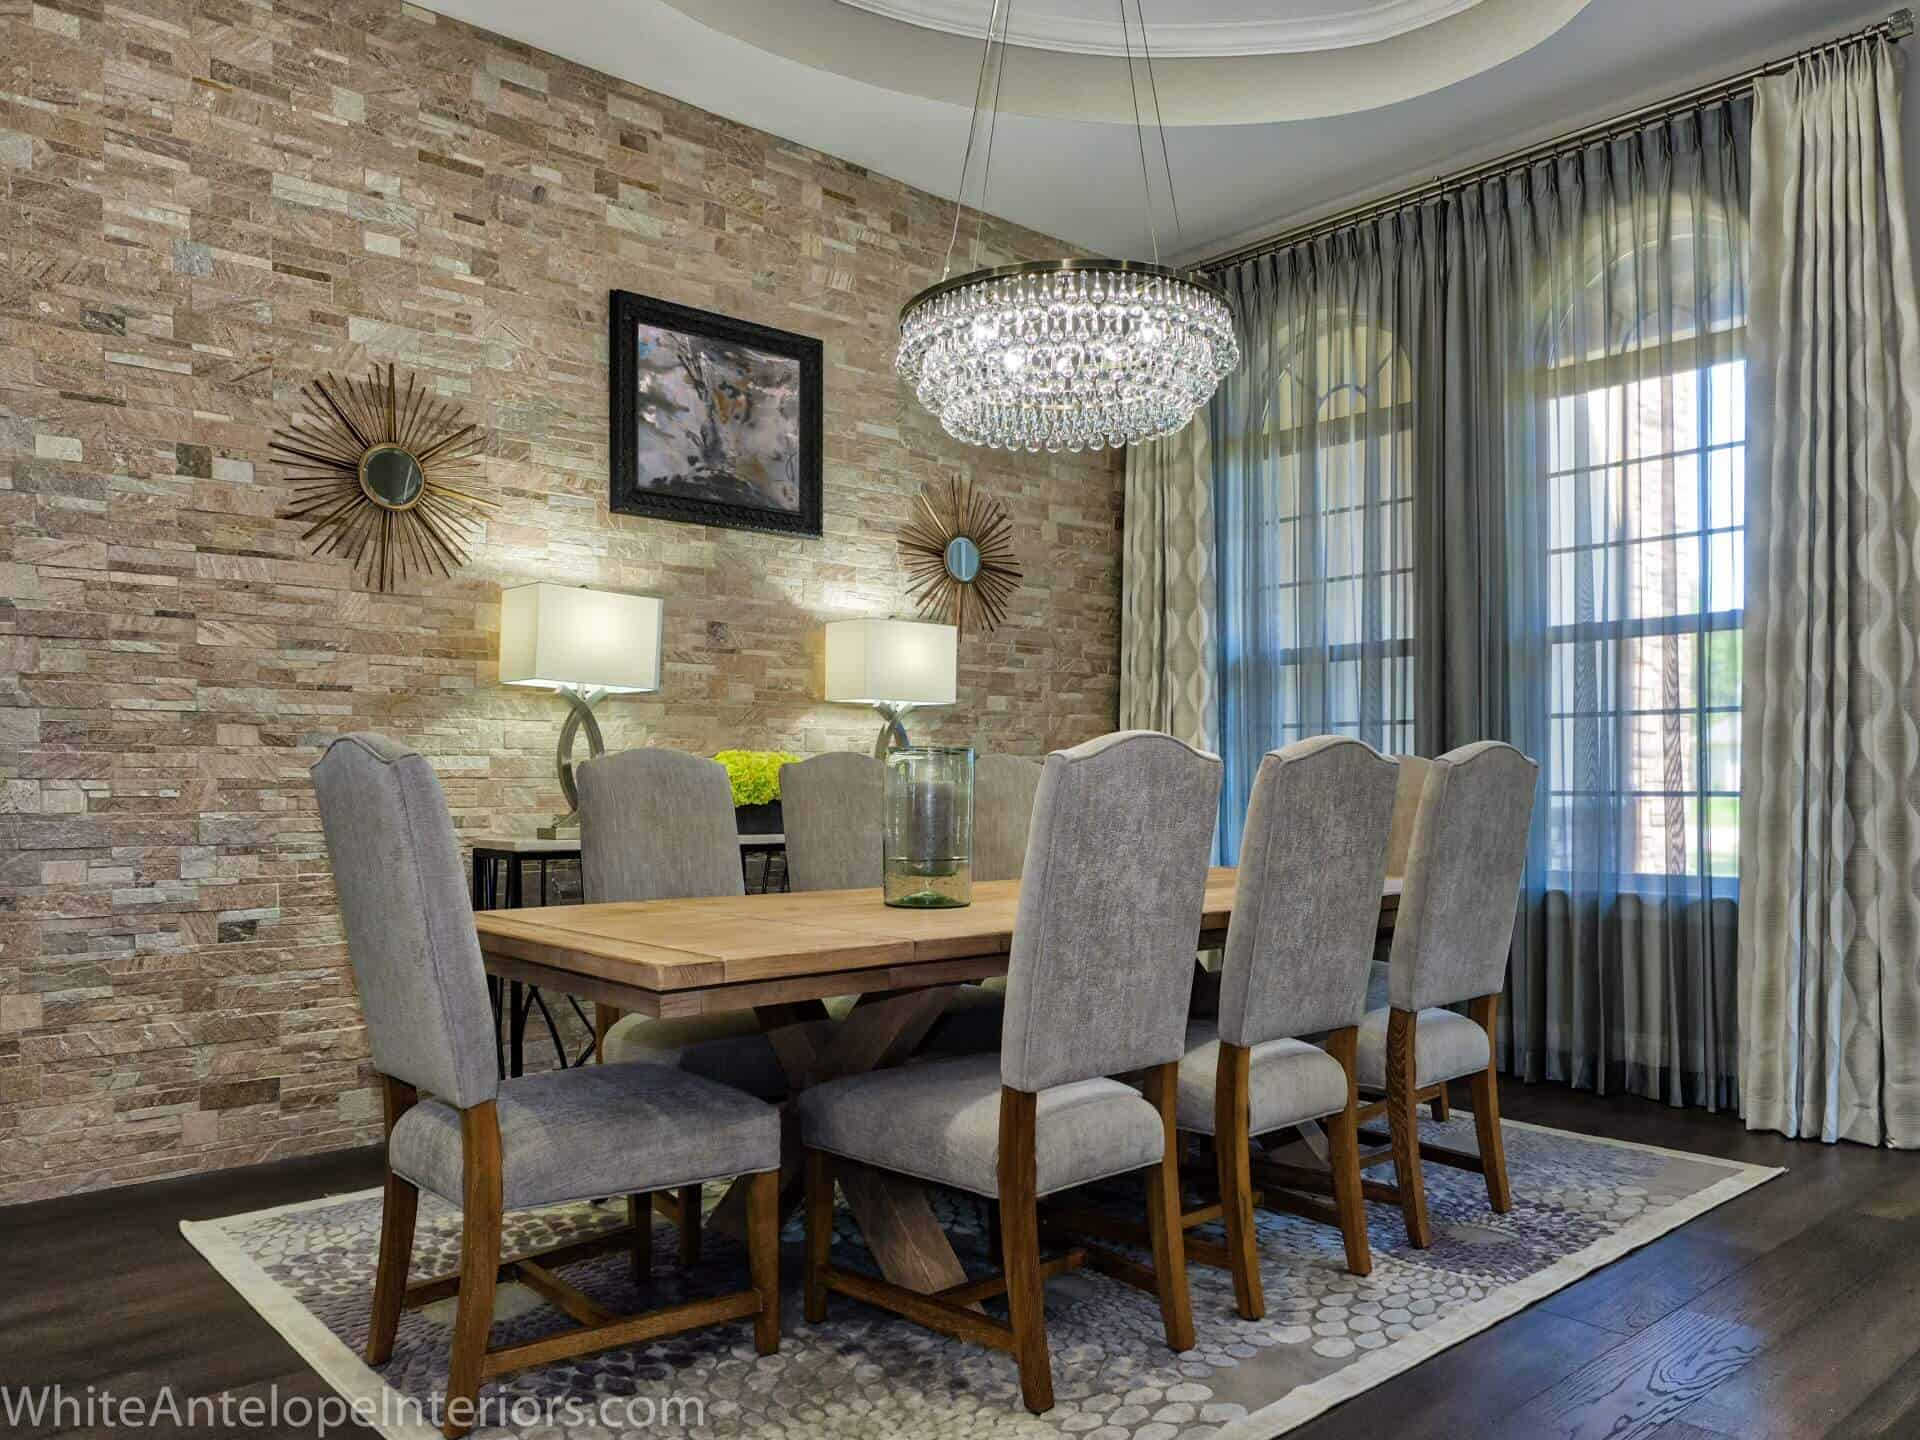 Home remodel the woodlands white antelope interiors - Interior designers the woodlands tx ...